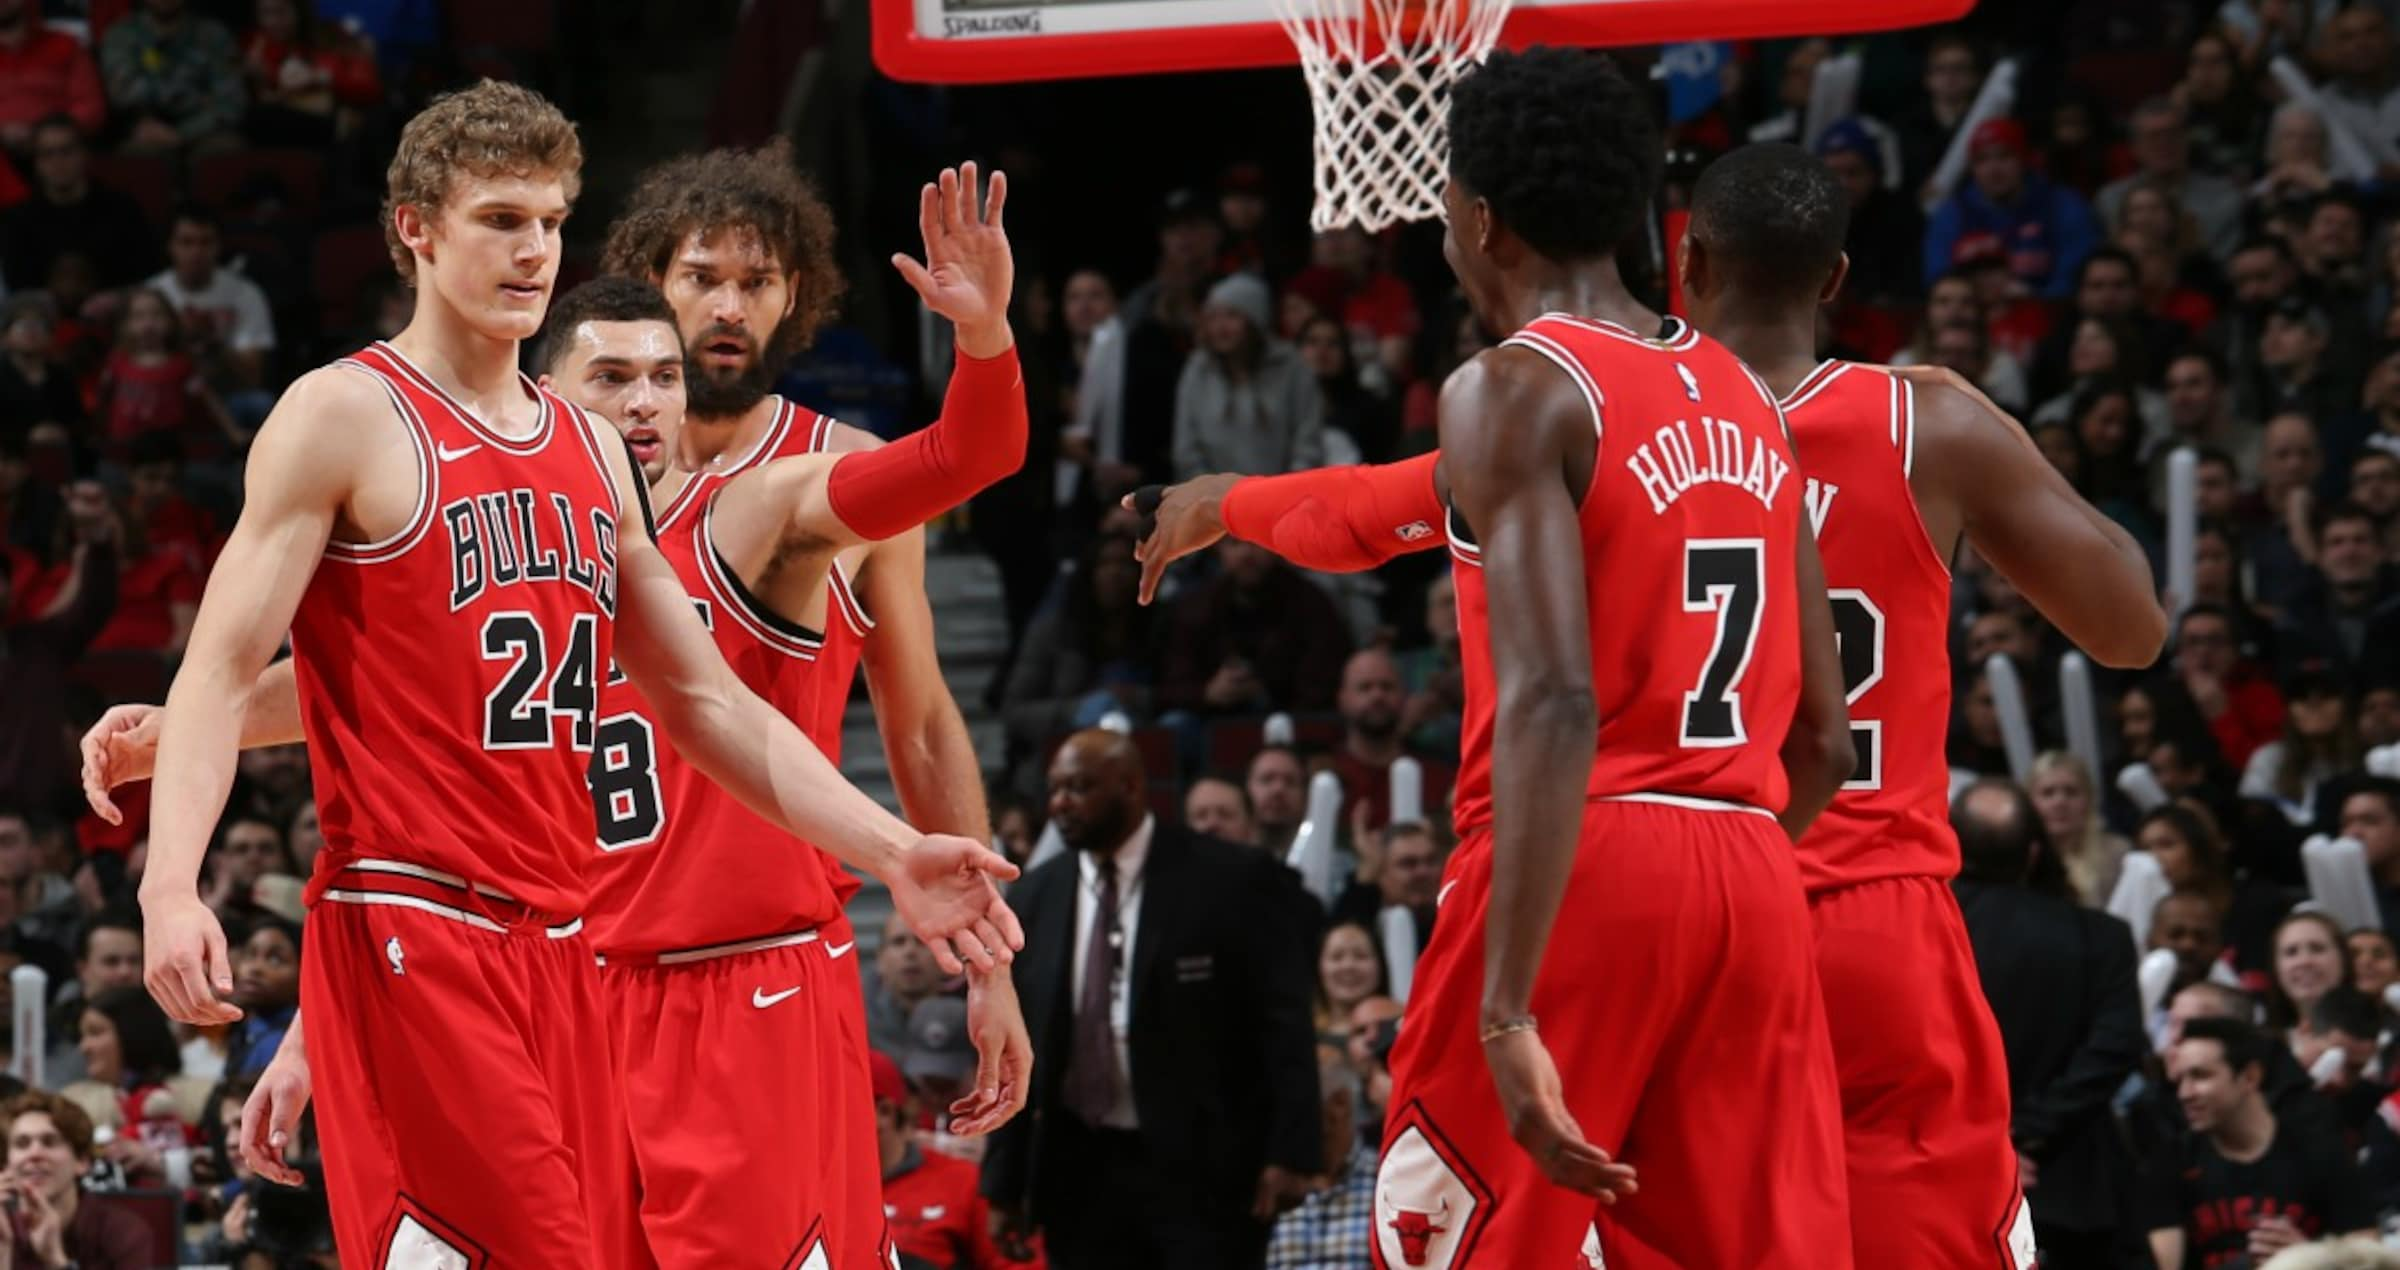 The Bulls high-five each other, as the Bulls take down the Pistons at the United Center 107-105.